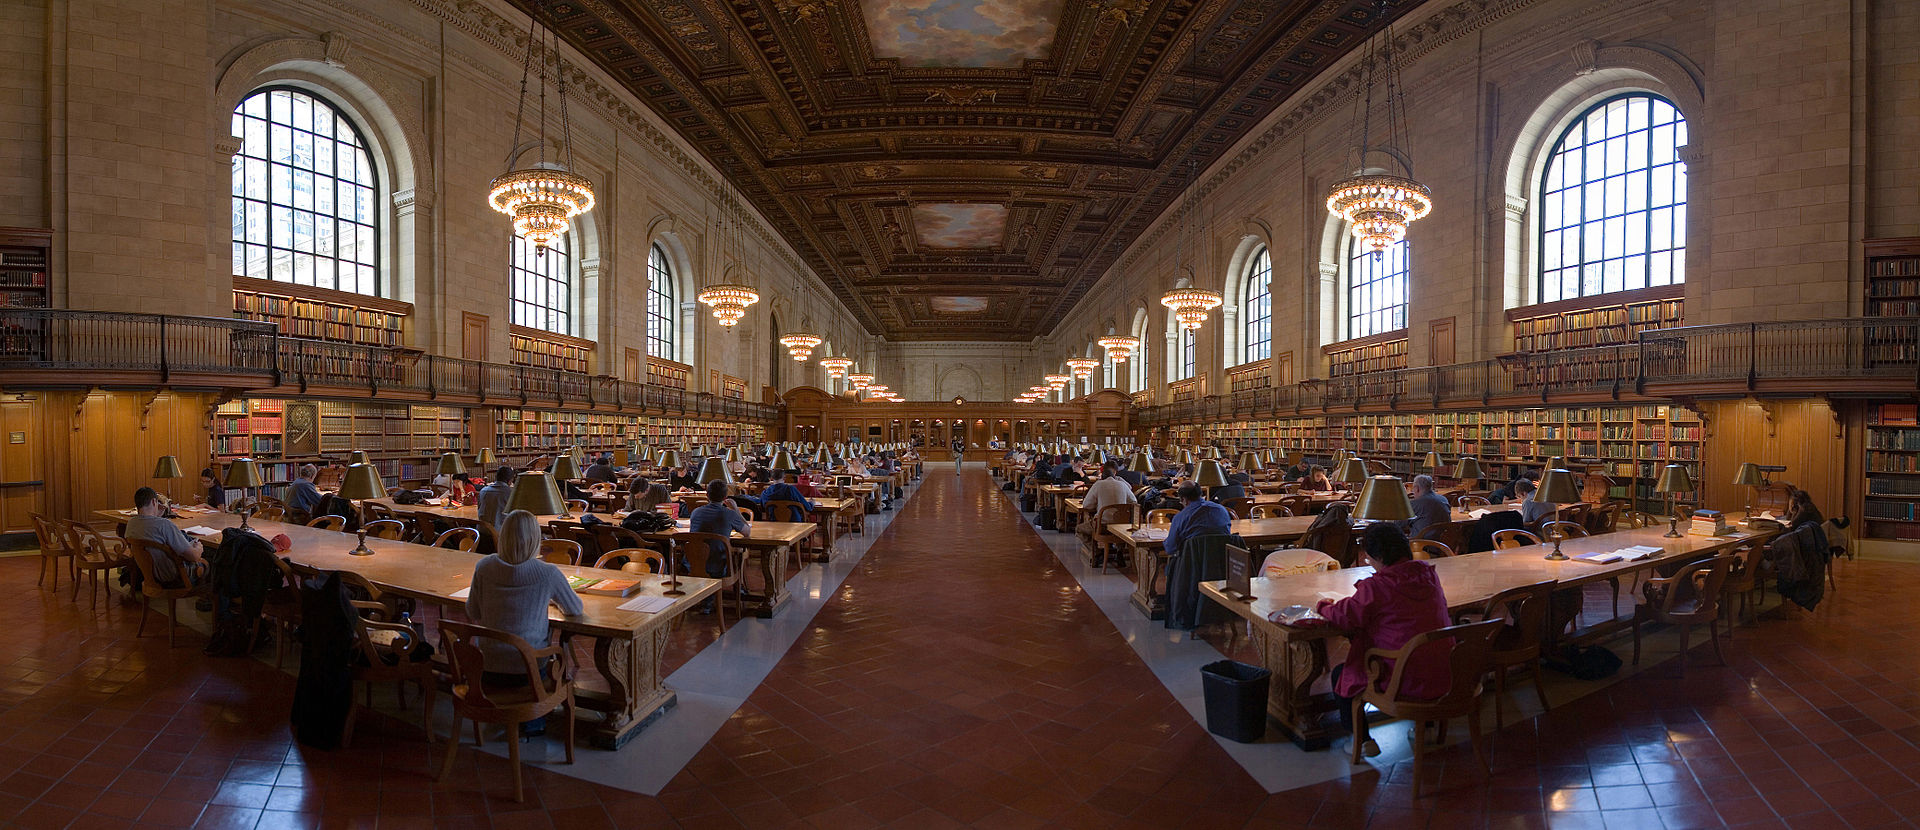 NYC_Public_Library_Research_Room_Jan_2006-1-_3